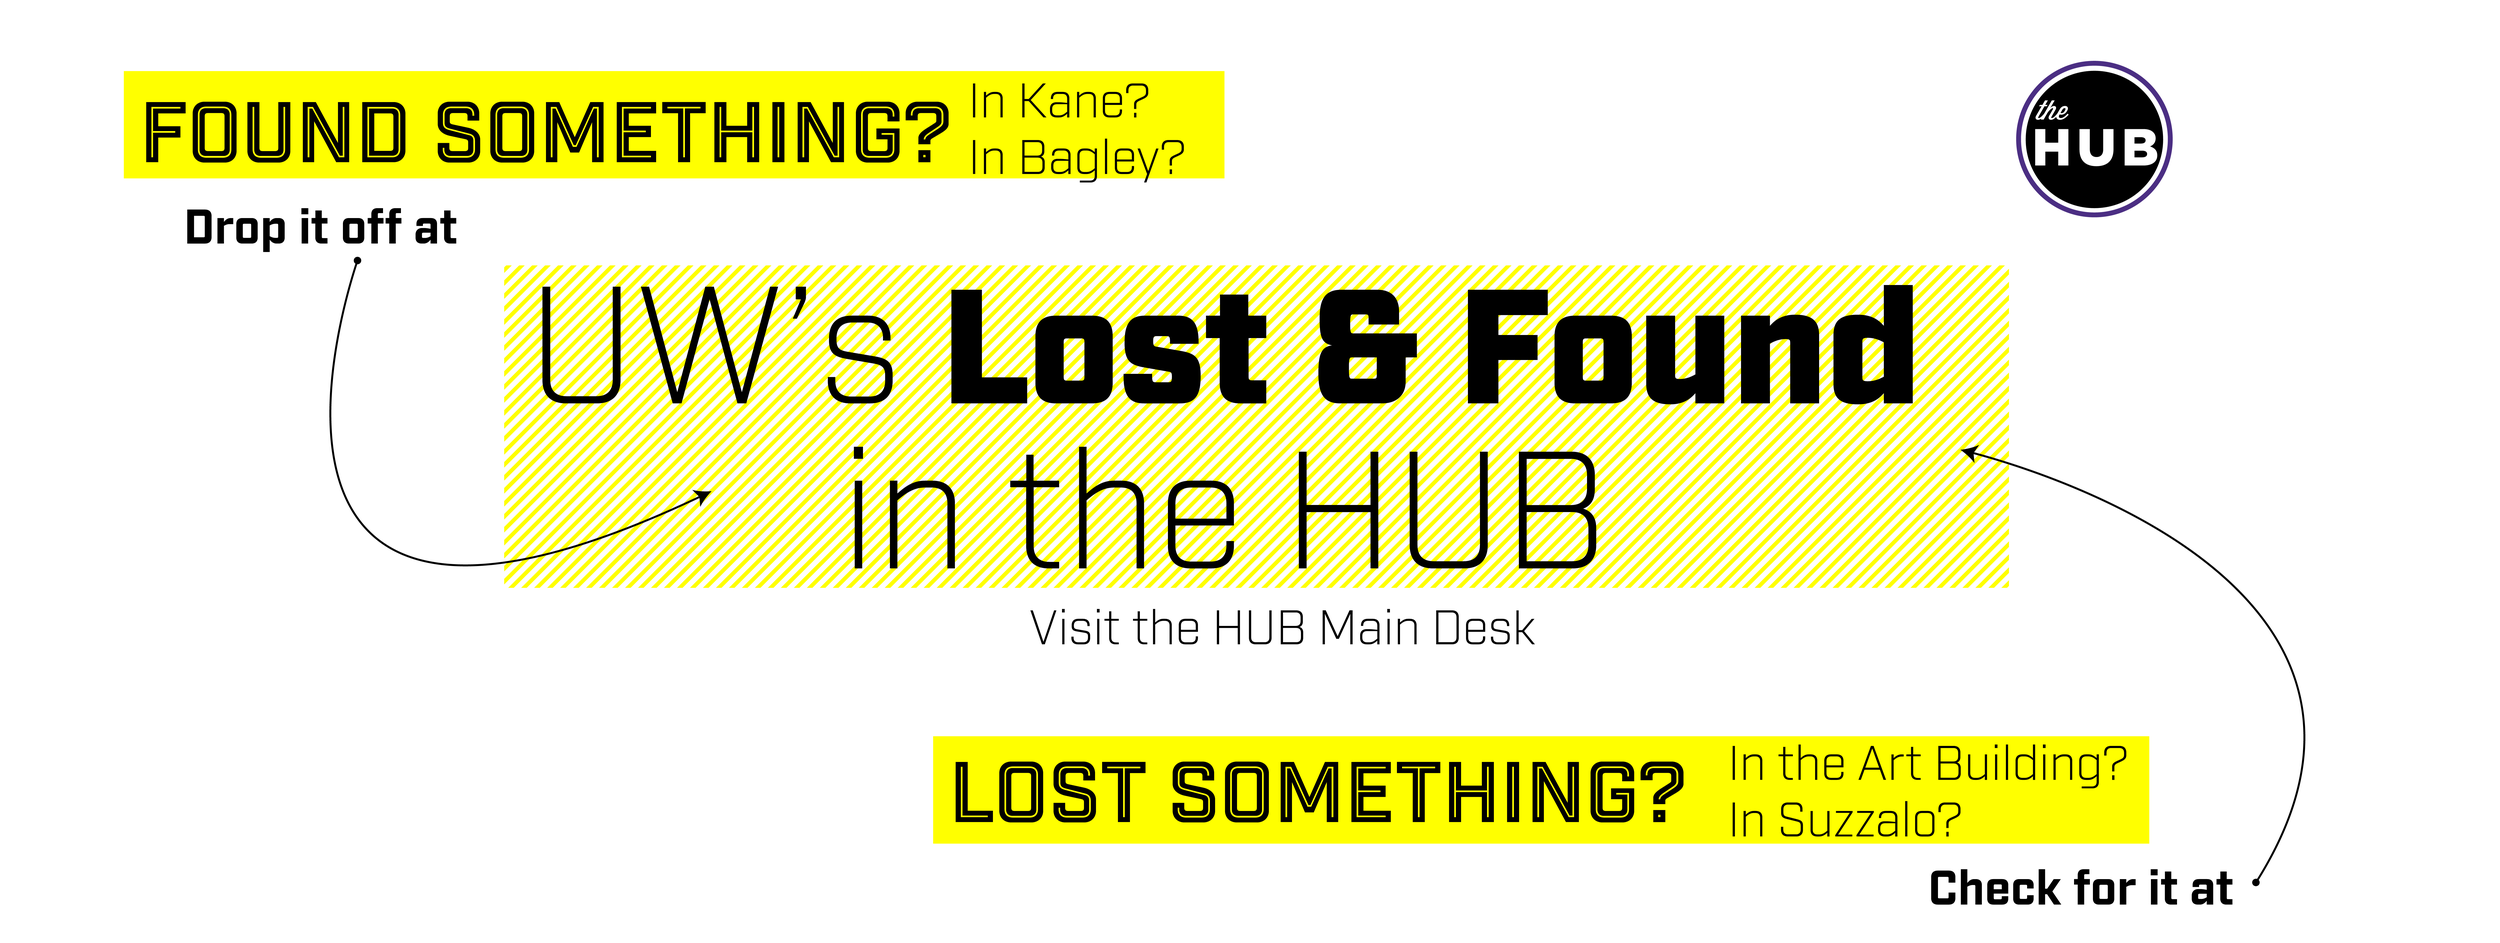 lost-found-VW.png